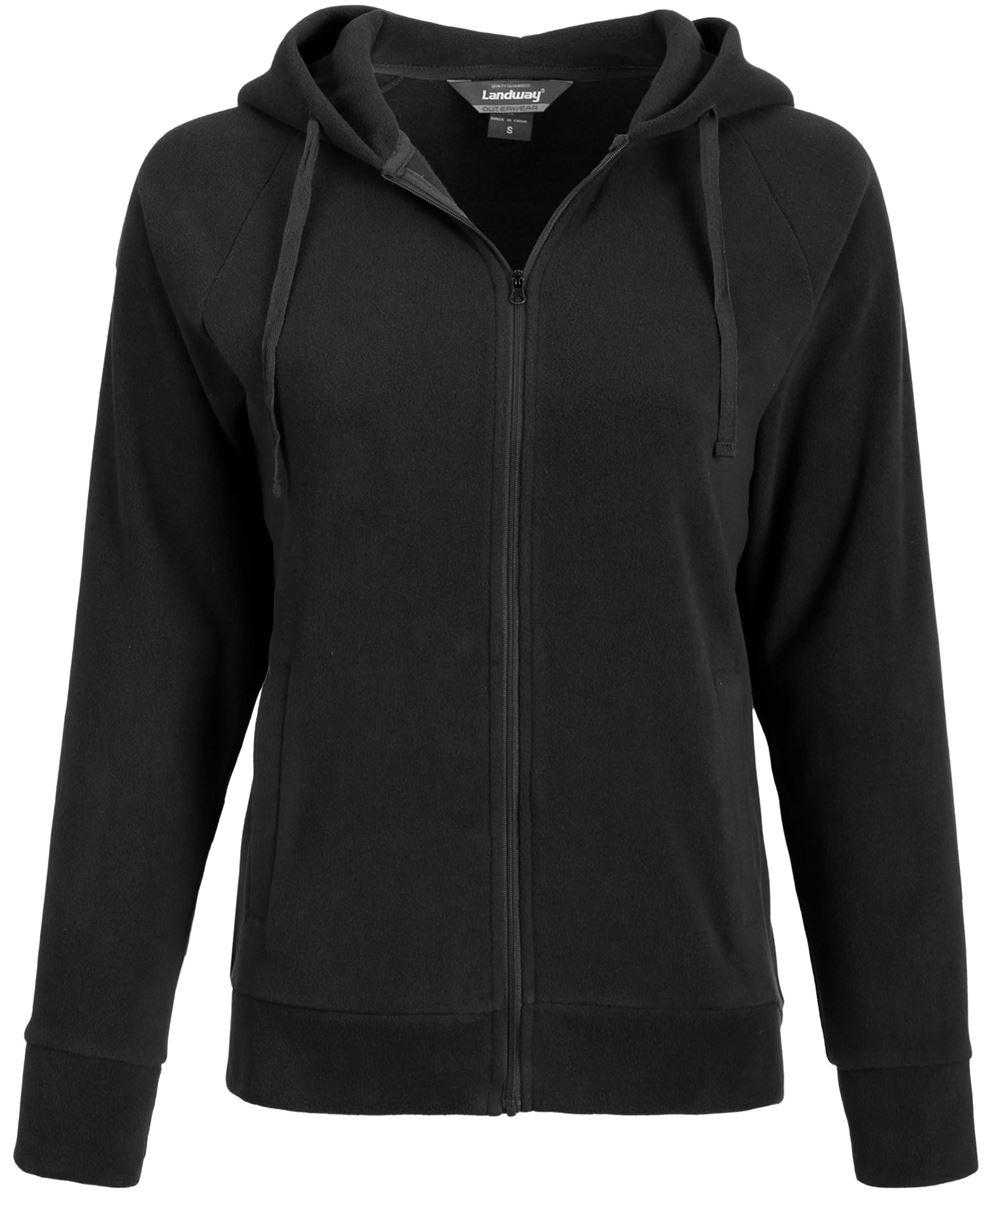 Landway 8828 - Ladies Shasta Hooded Microfleece